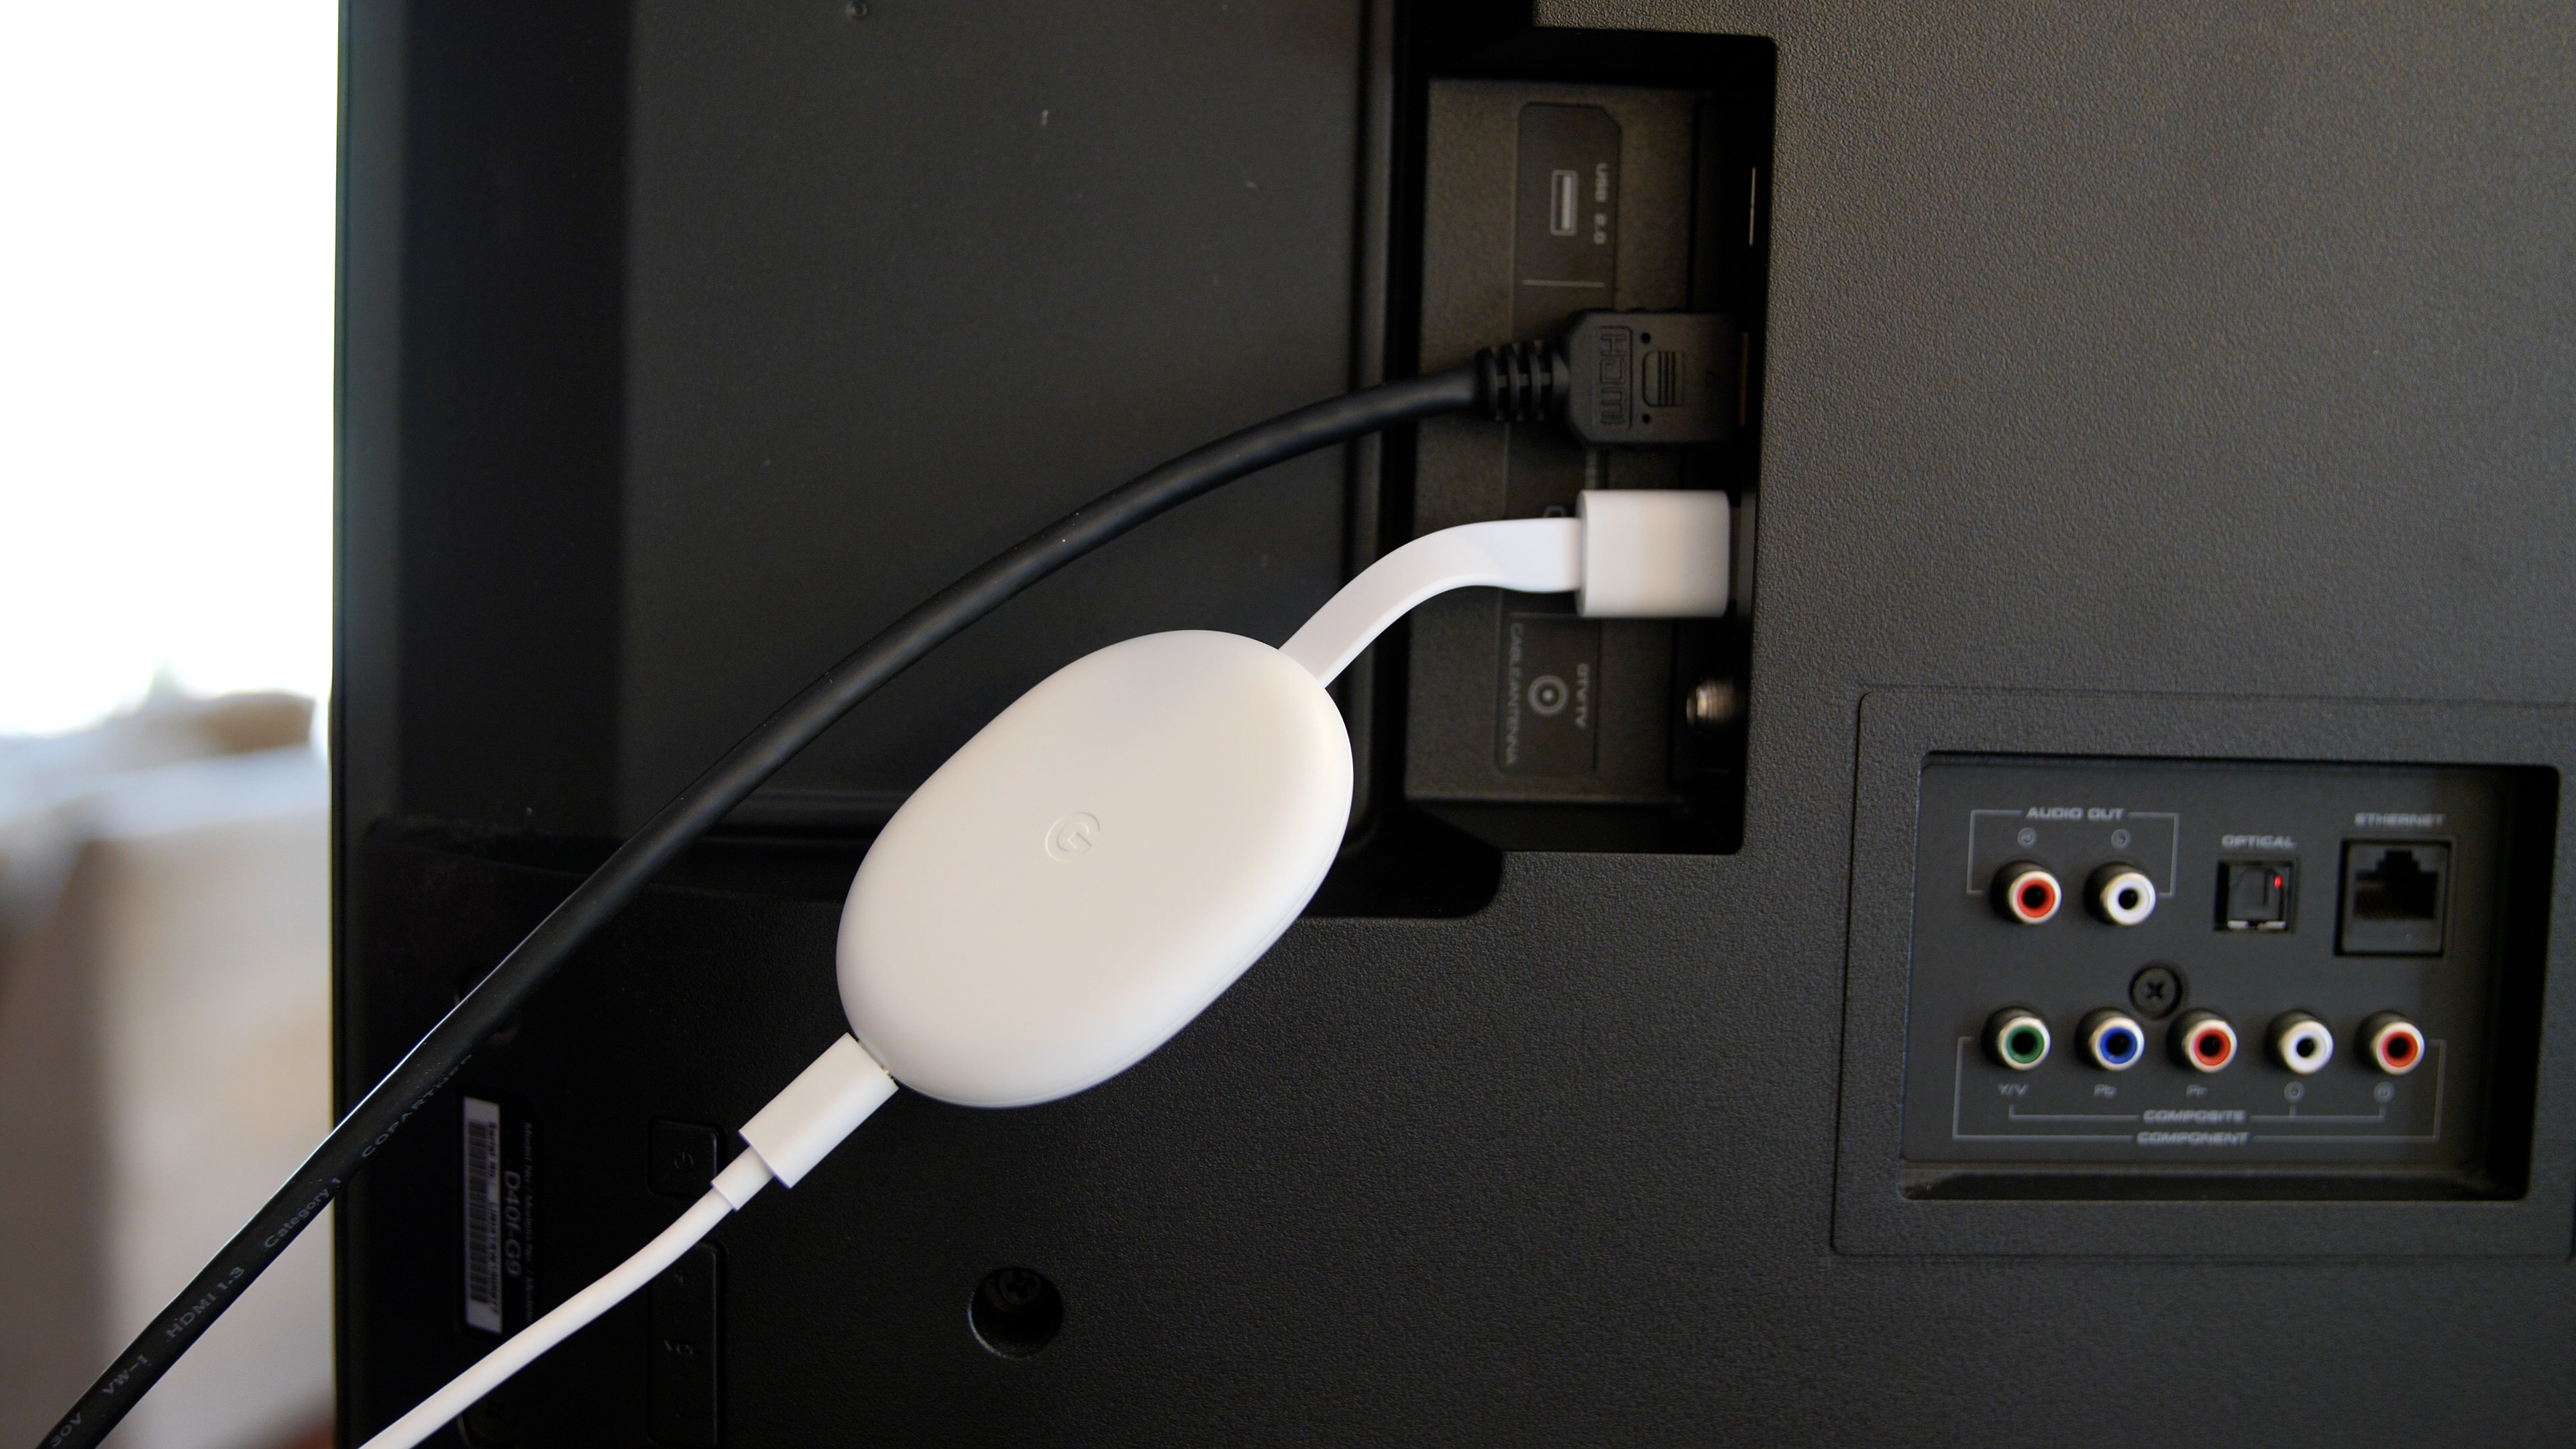 Video: How to set up the Chromecast with Google TV and the voice remote